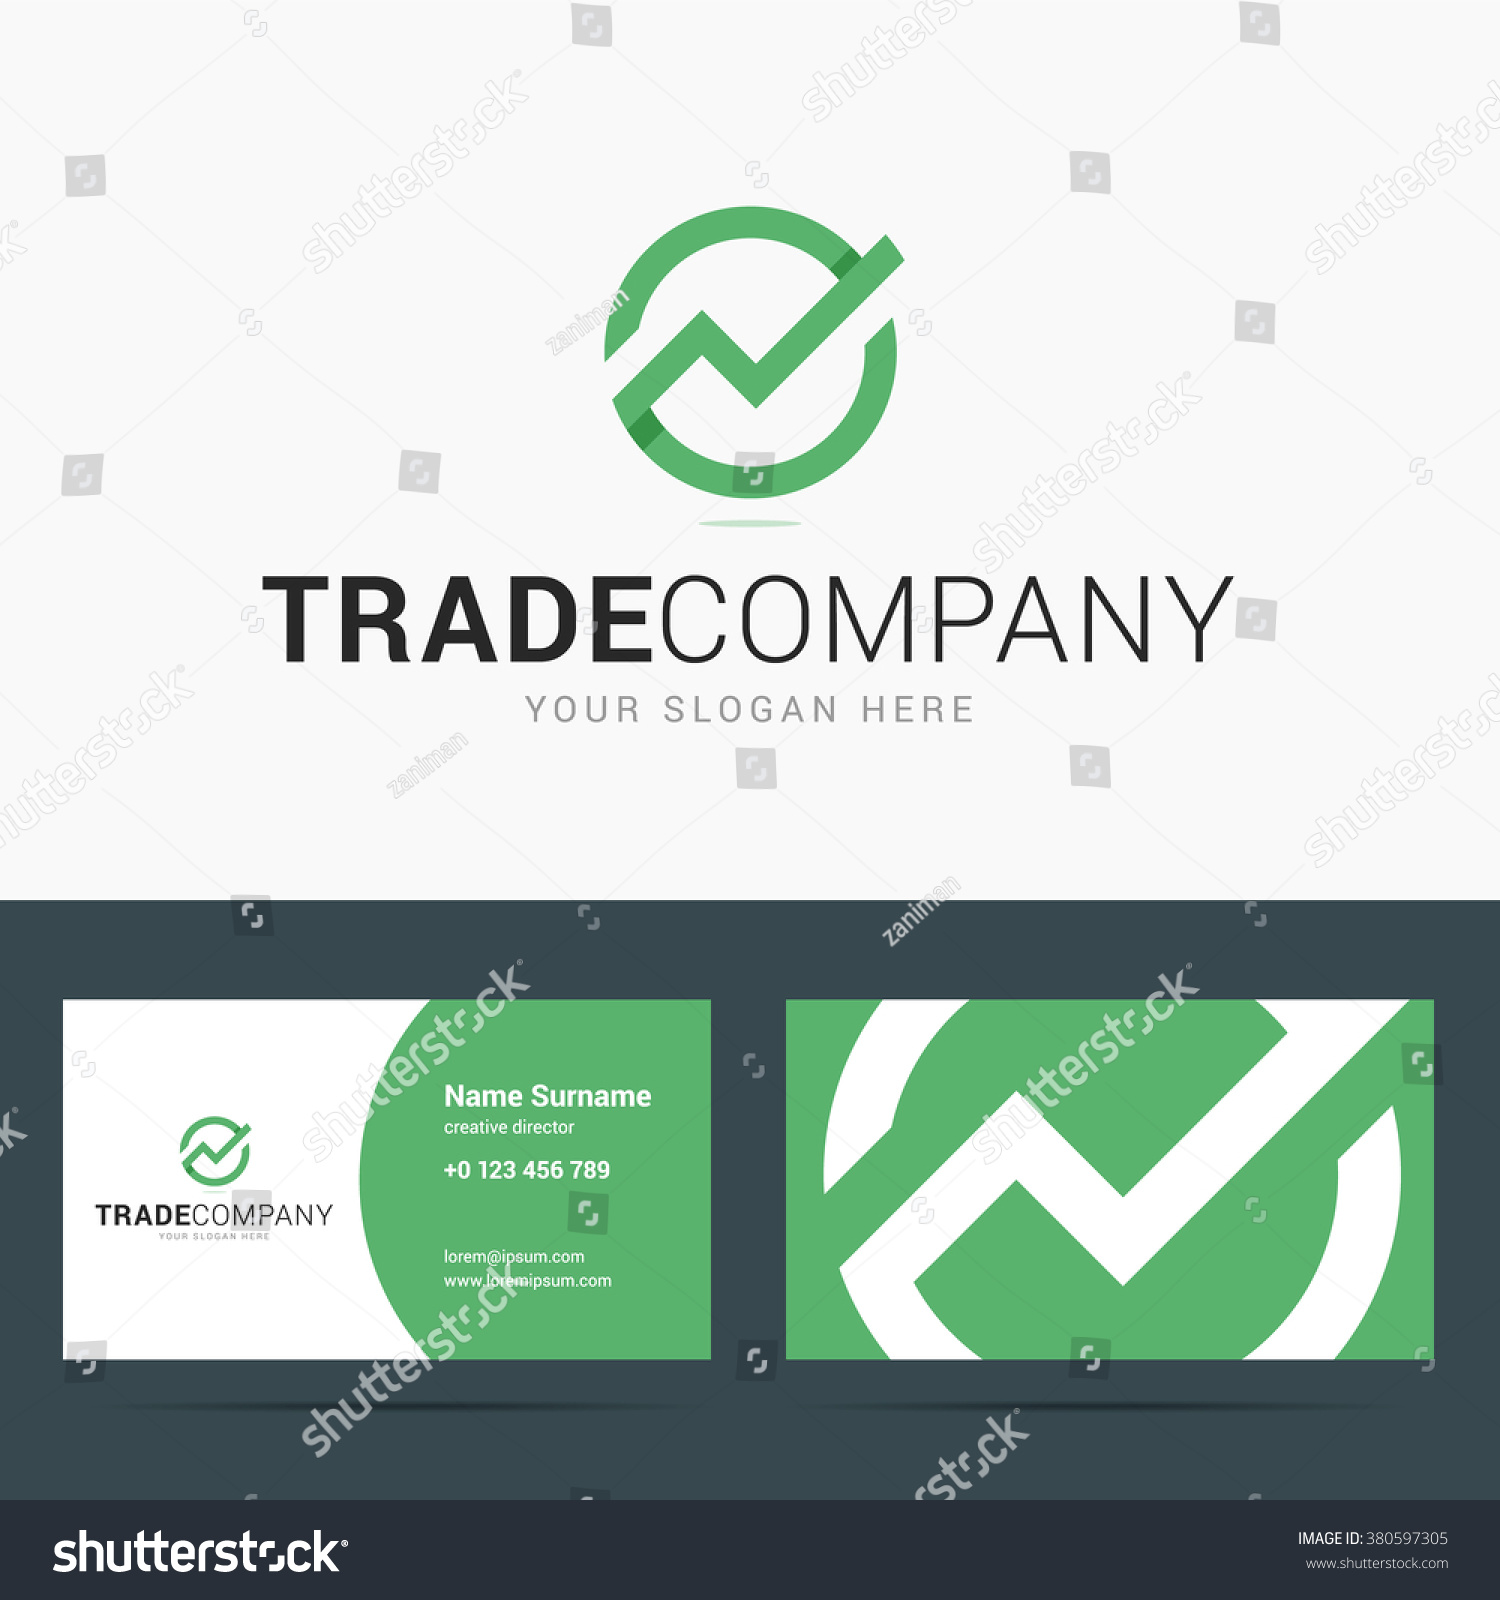 Logo business card template trade company stock vector 380597305 logo and business card template for trade company line chart sign trend up logo jeuxipadfo Gallery